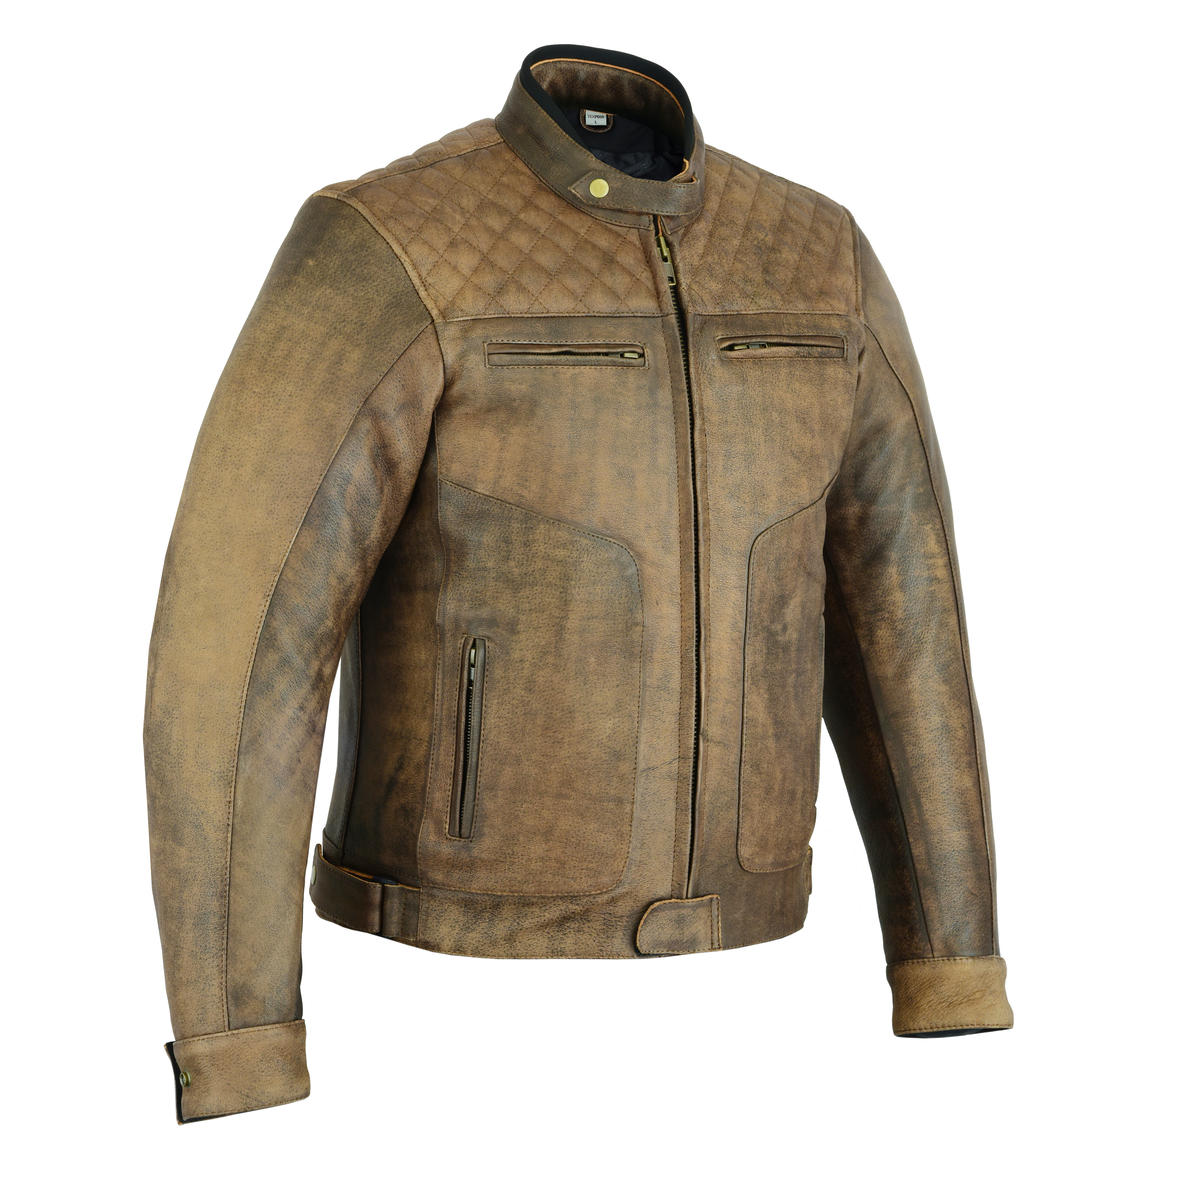 LJ-BRN-DIA (Brown Diamond Leather Jacket)